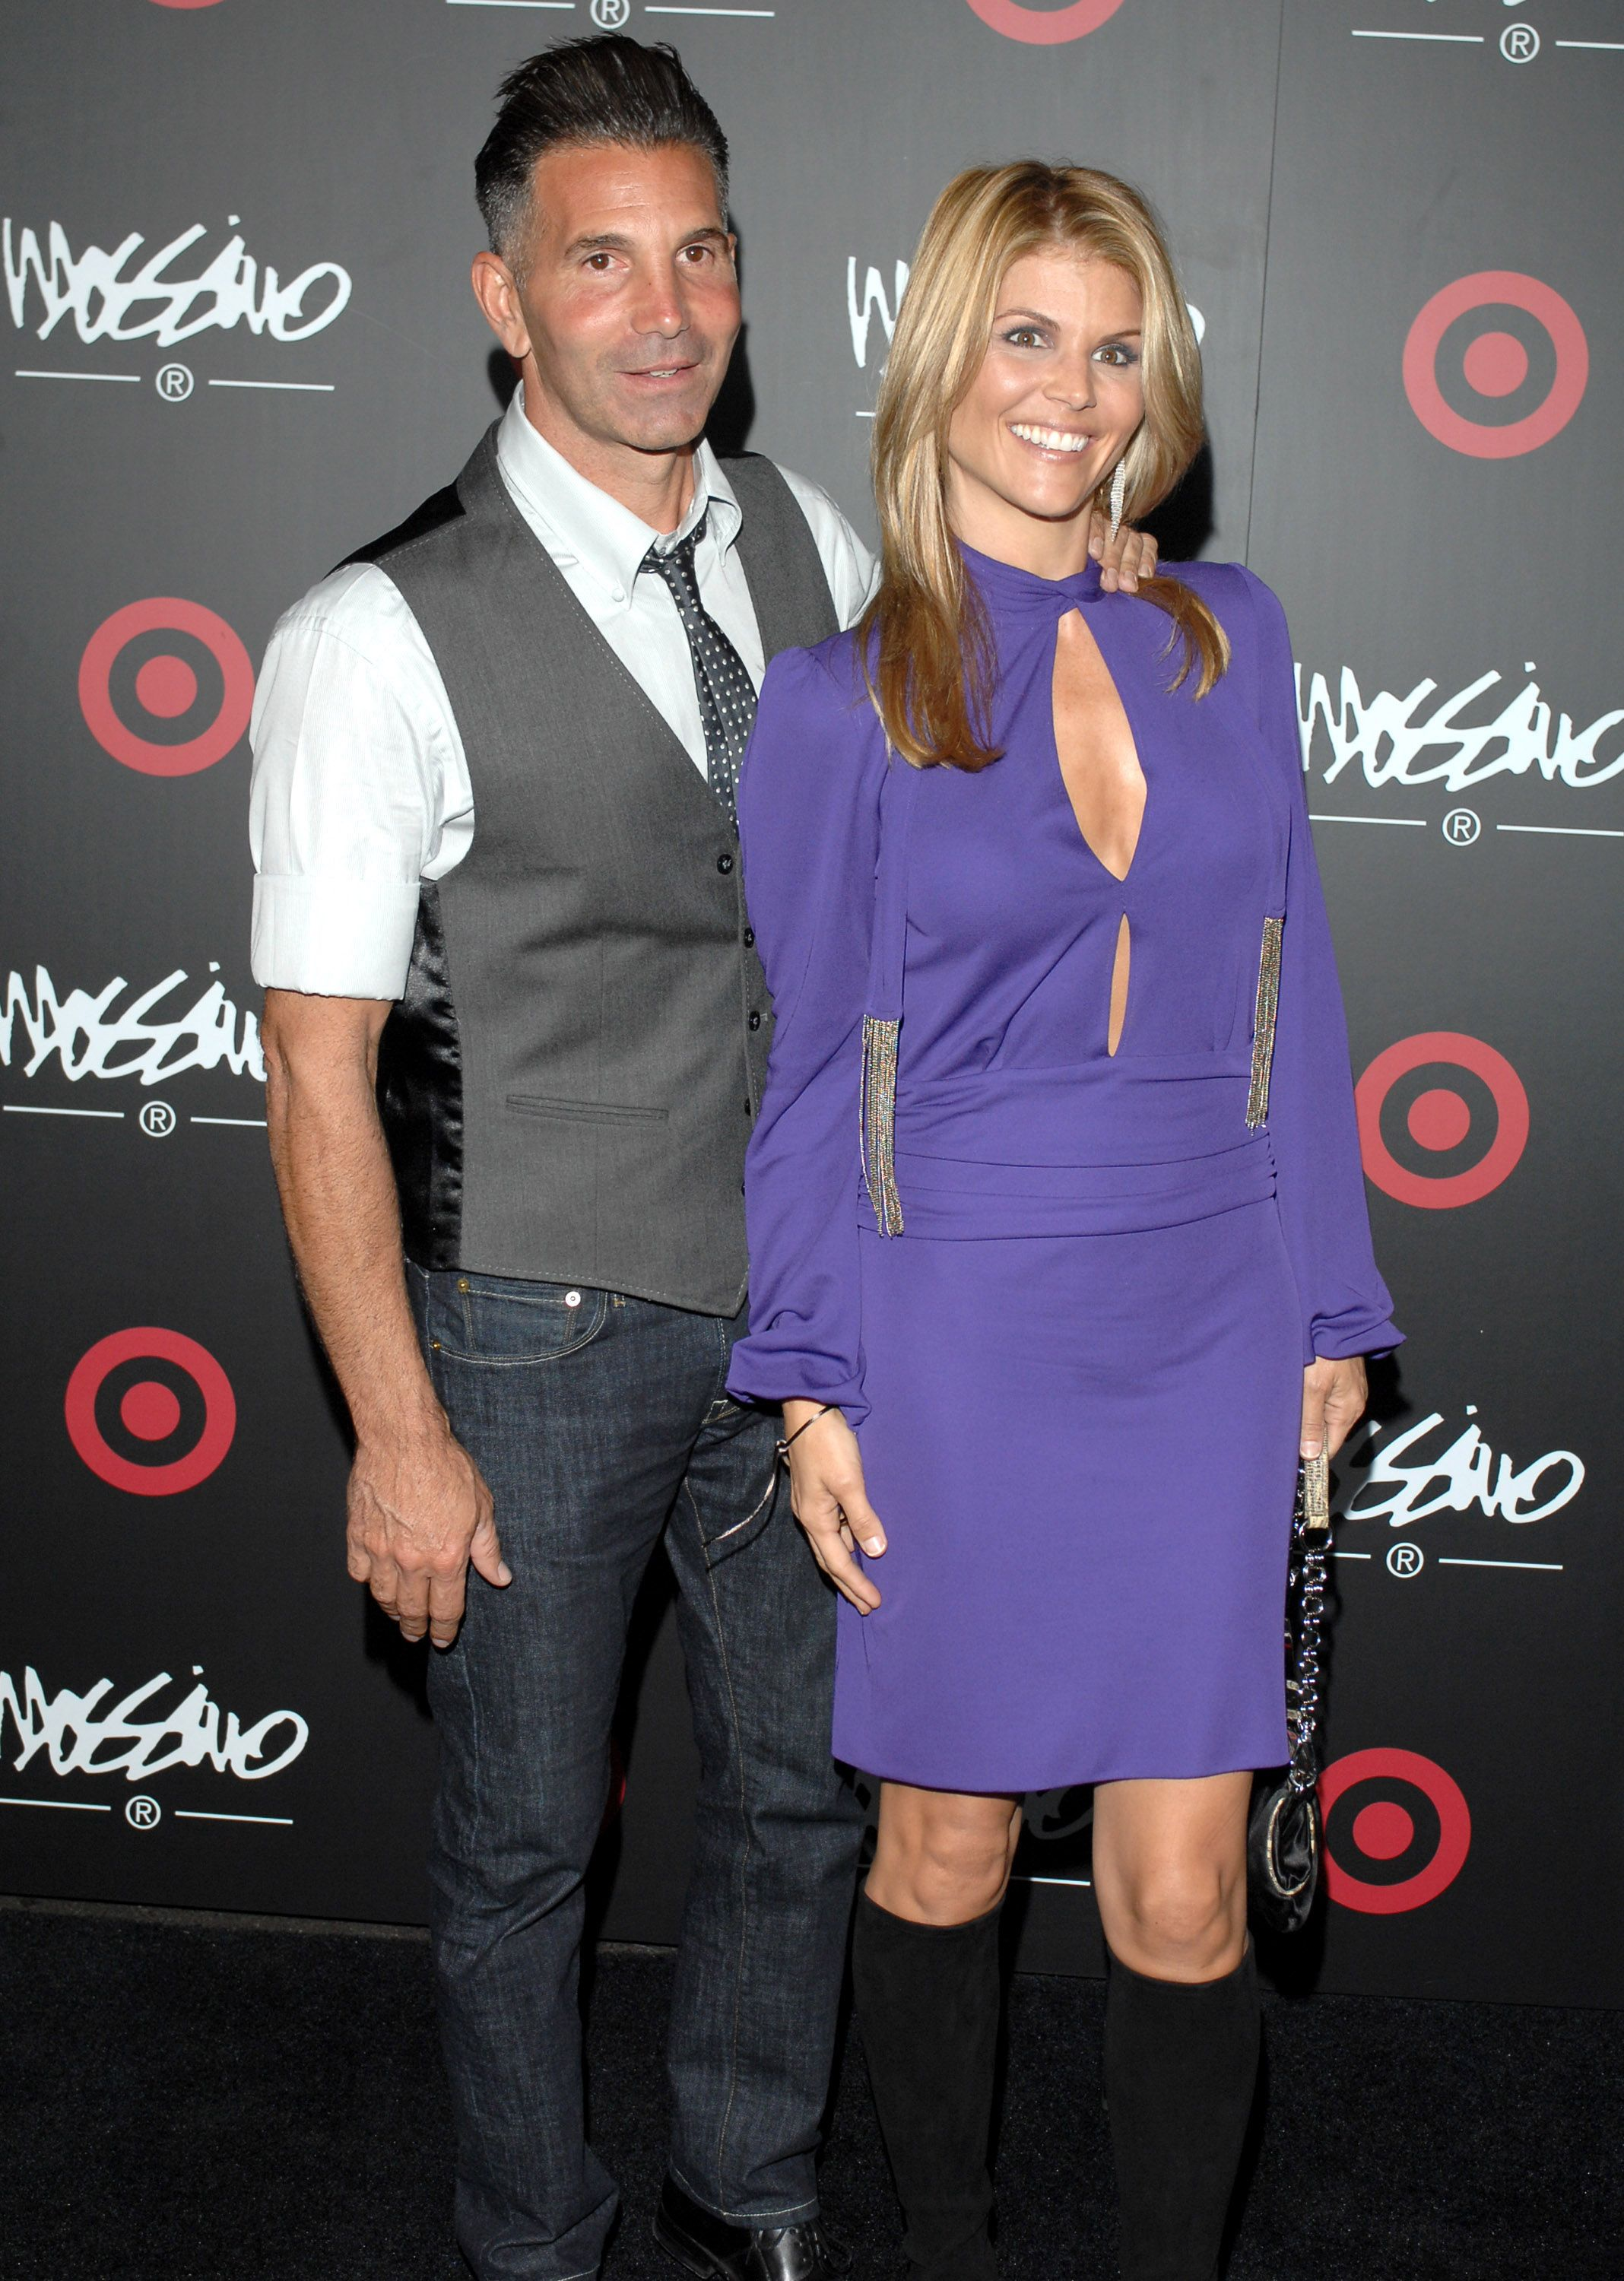 Mossimo Giannulli and Lori Loughlin at the Target Hosts LA Fashion Week Party for Giannulli on October 19, 2006 | Photo: L. Cohen/WireImage/Getty Images